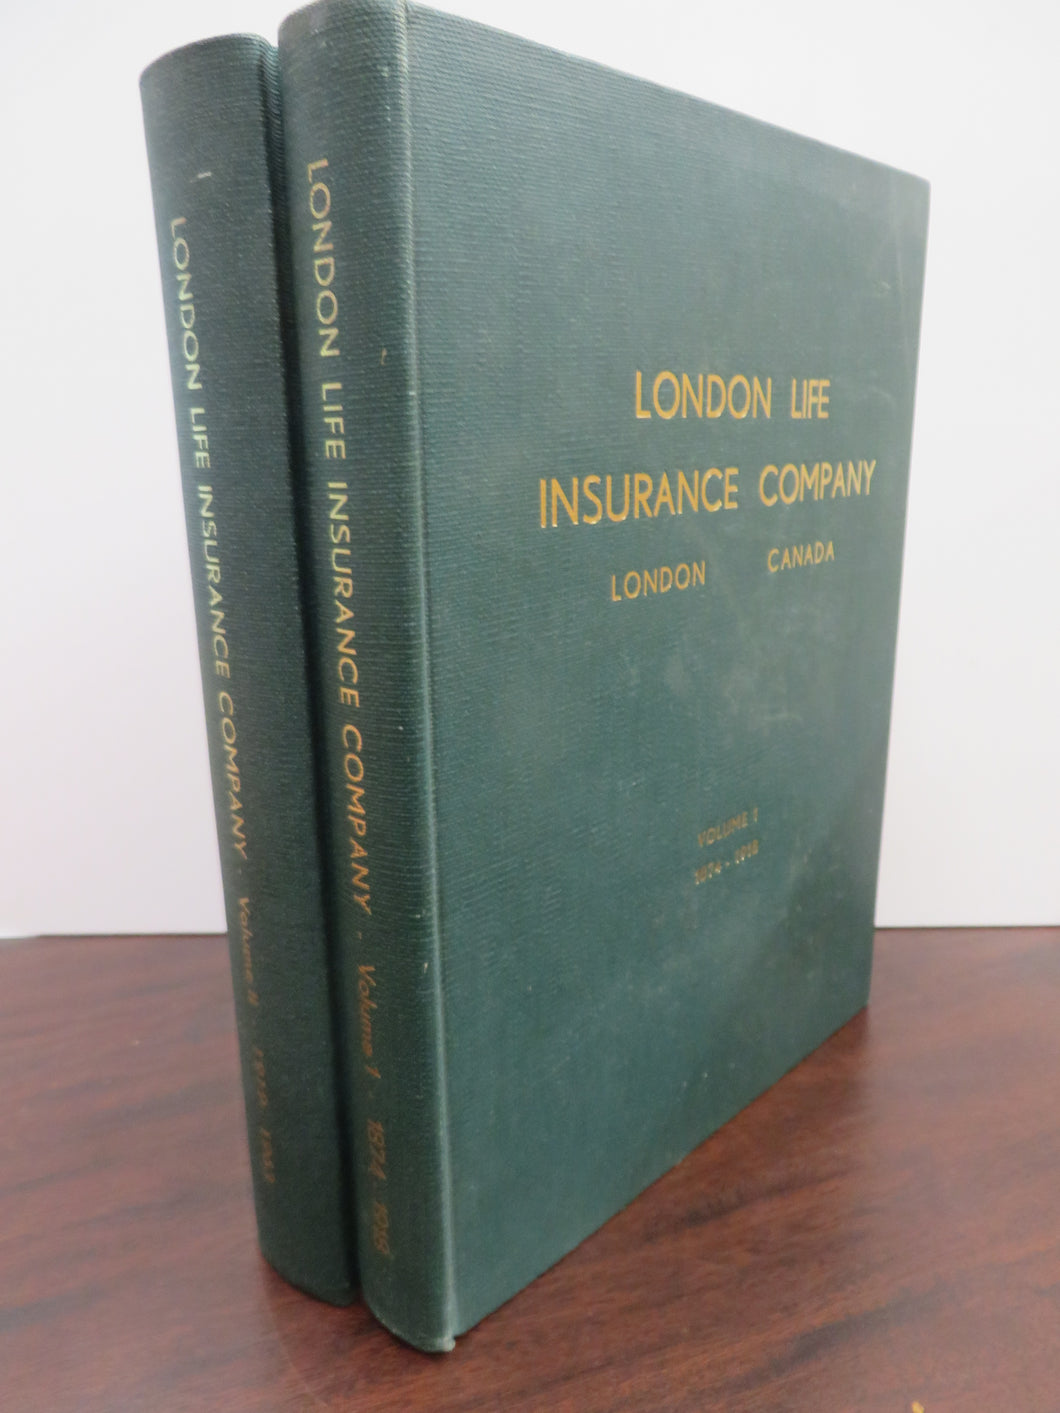 London Life Insurance Company, London Canada. Volume I: 1874-1918. Volume II: 1910-1963